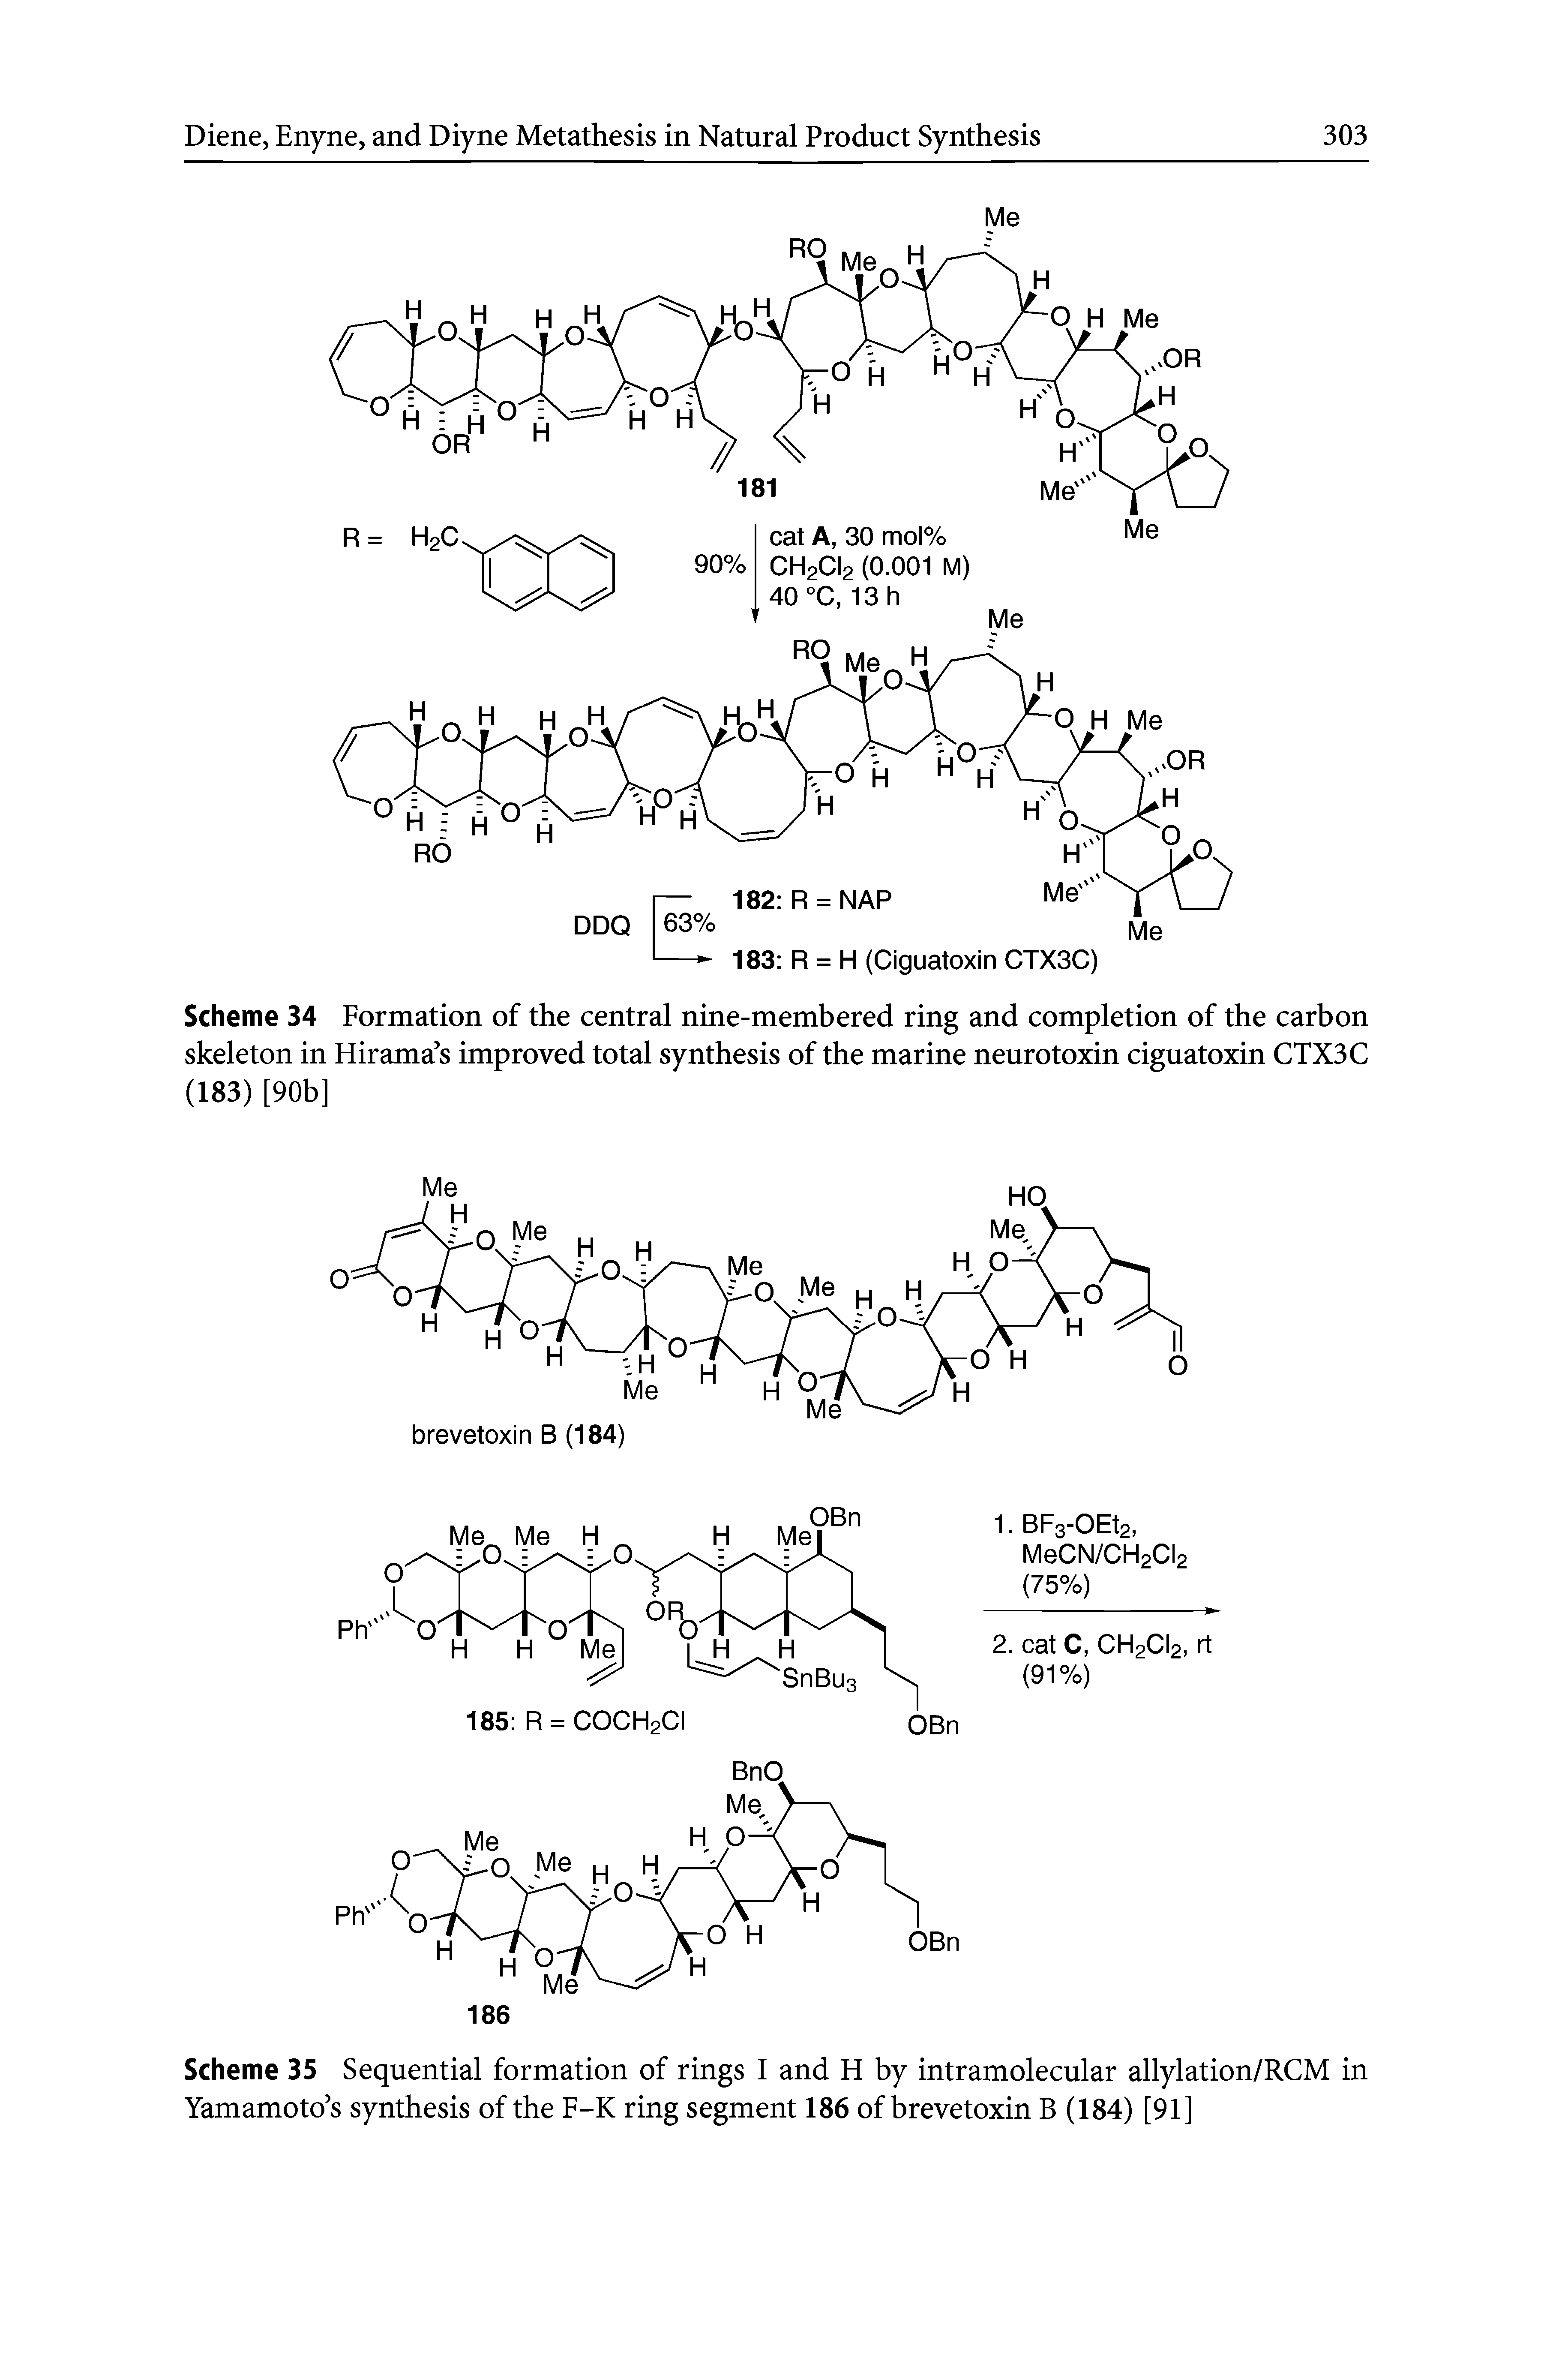 "Scheme 35 Sequential formation of rings I and H by <a href=""/info/allylation_intramolecular"">intramolecular allylation</a>/RCM in Yamamoto s synthesis of the F-K ring segment 186 of brevetoxin B (184) [91]"